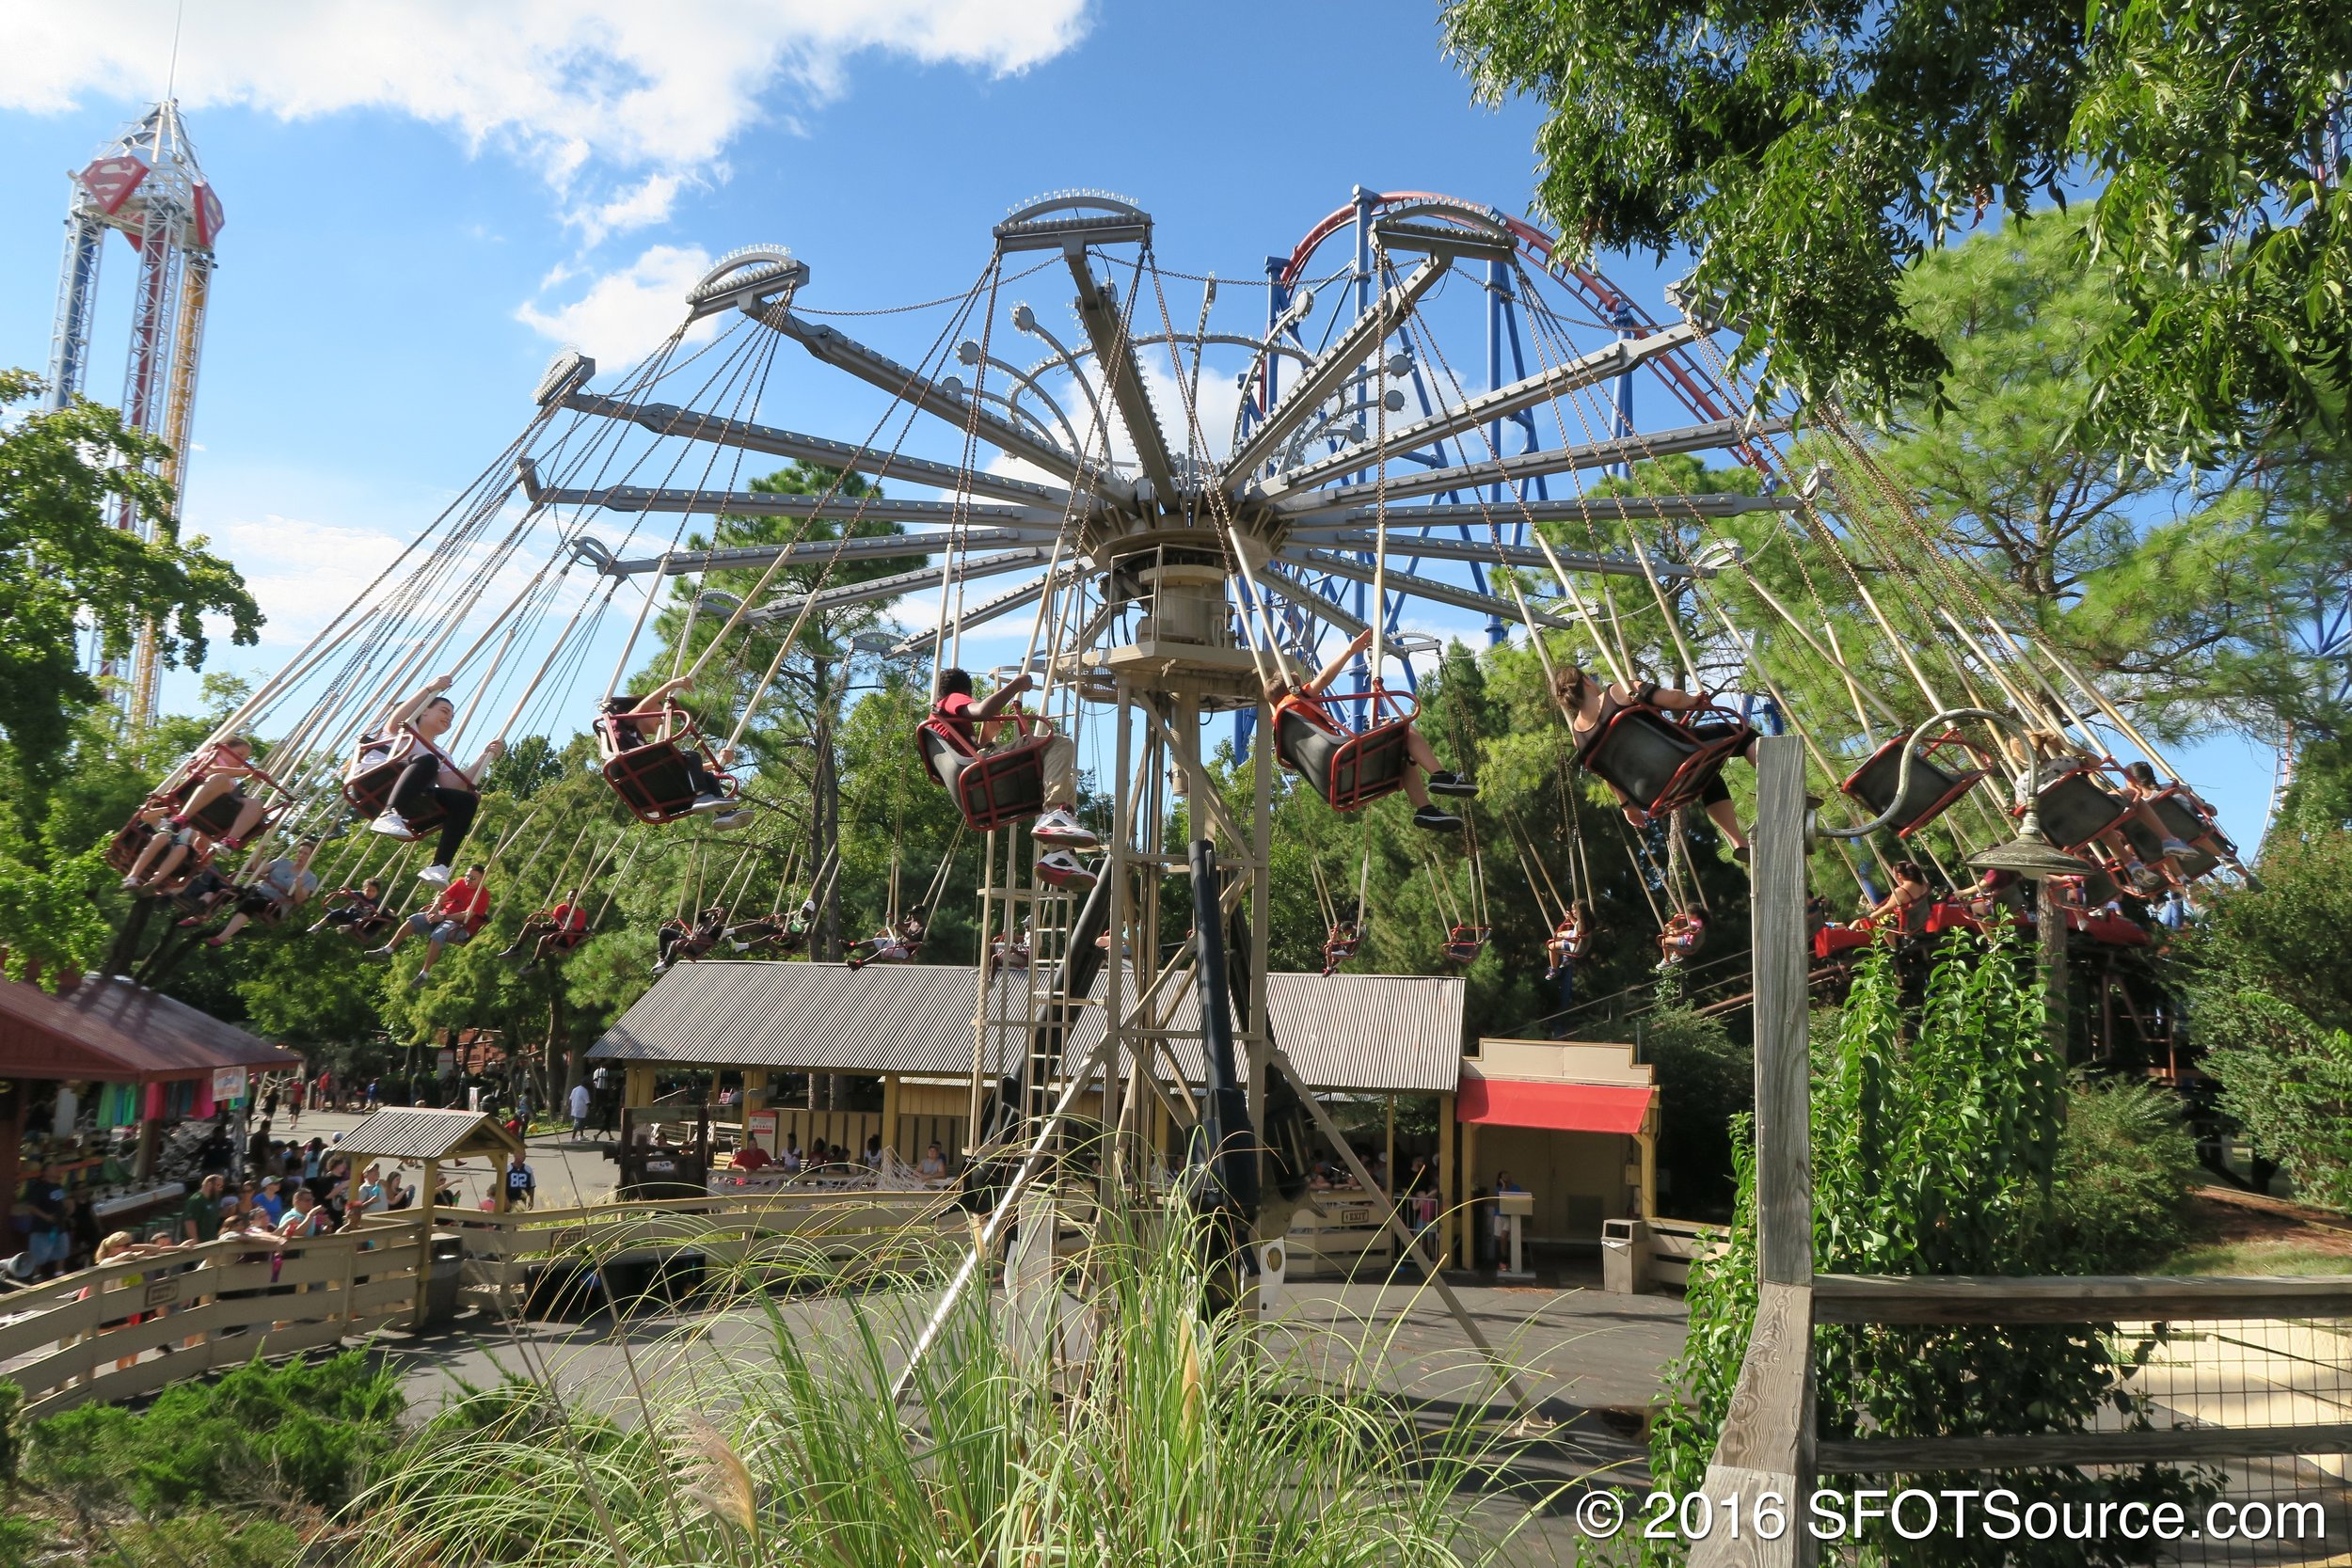 Gunslinger is a spinning swing attraction.